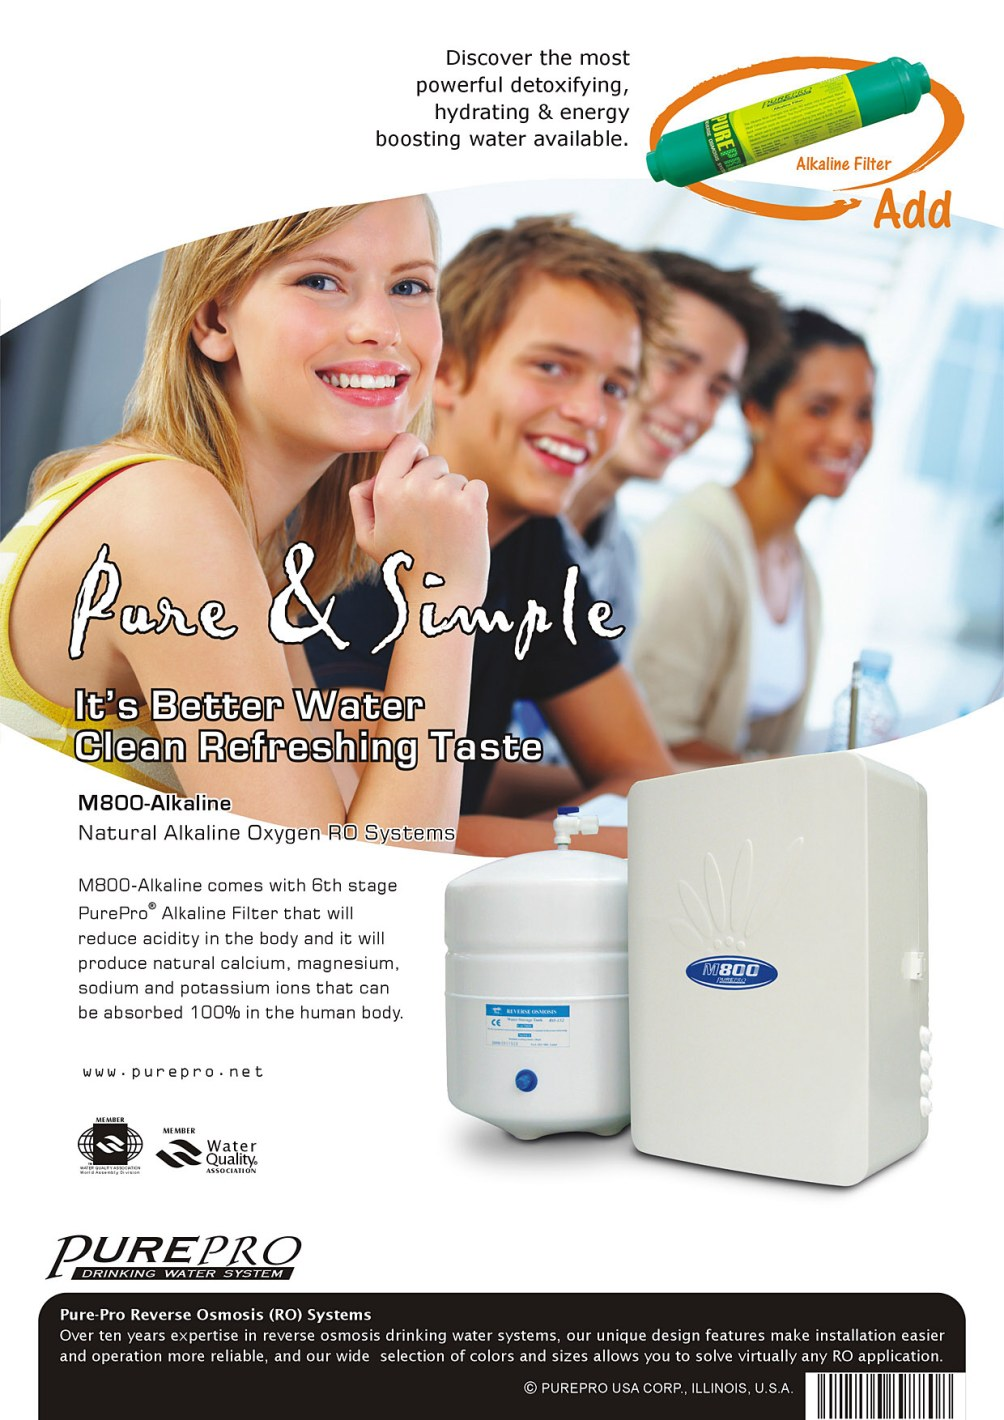 PurePro ® Alkaline Reverse Osmosis (RO) Water Filtration Systems